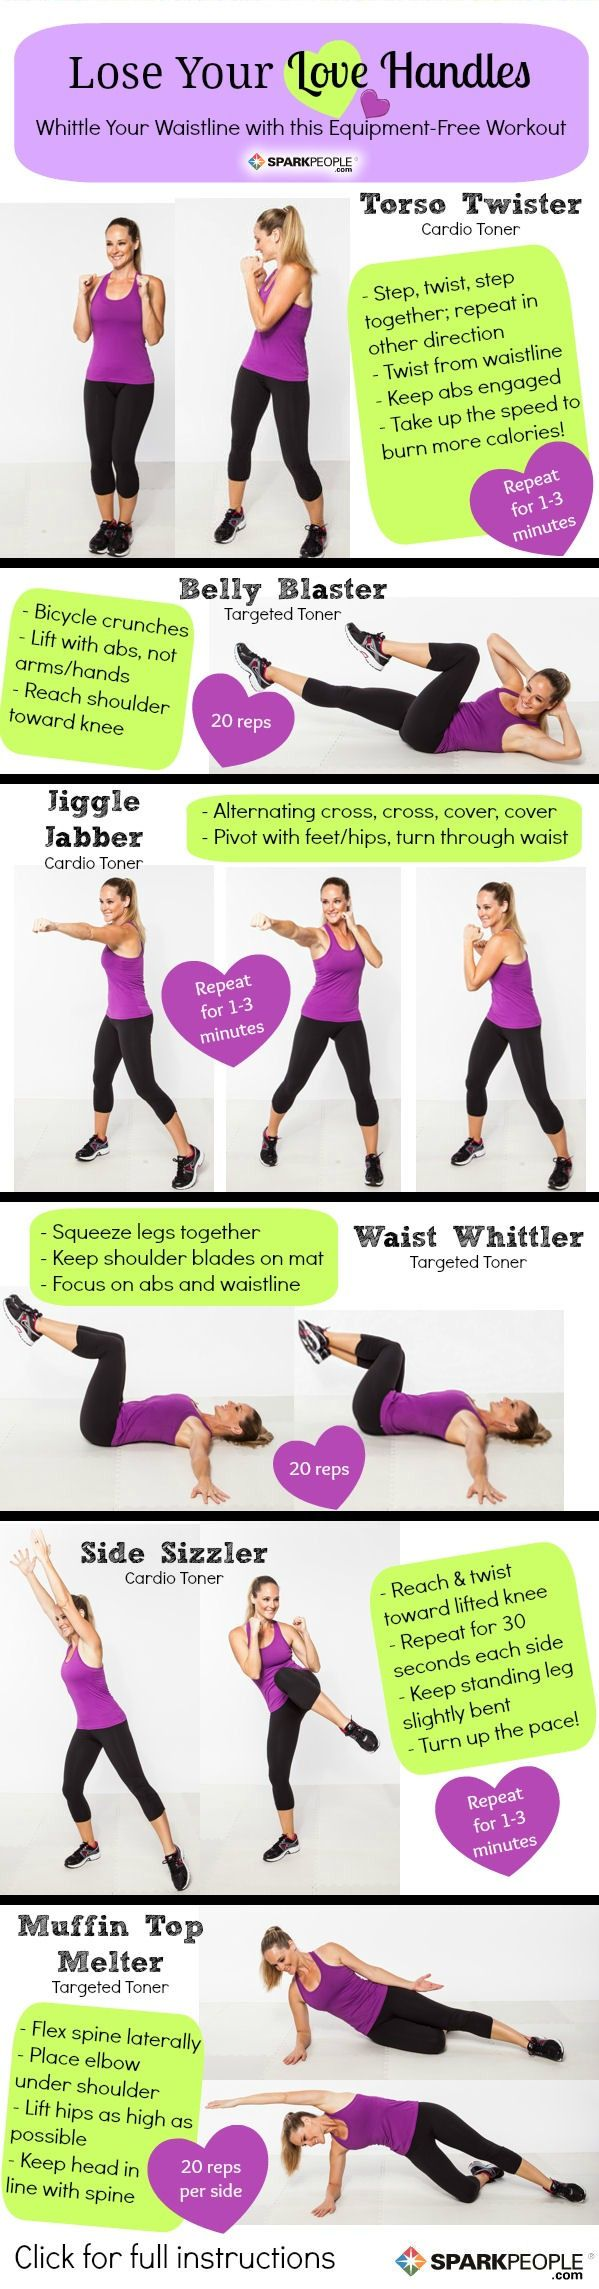 Lose Your Love Handles with these great exercises from SparkPeople. The Muffin Top Melter is a tough one!